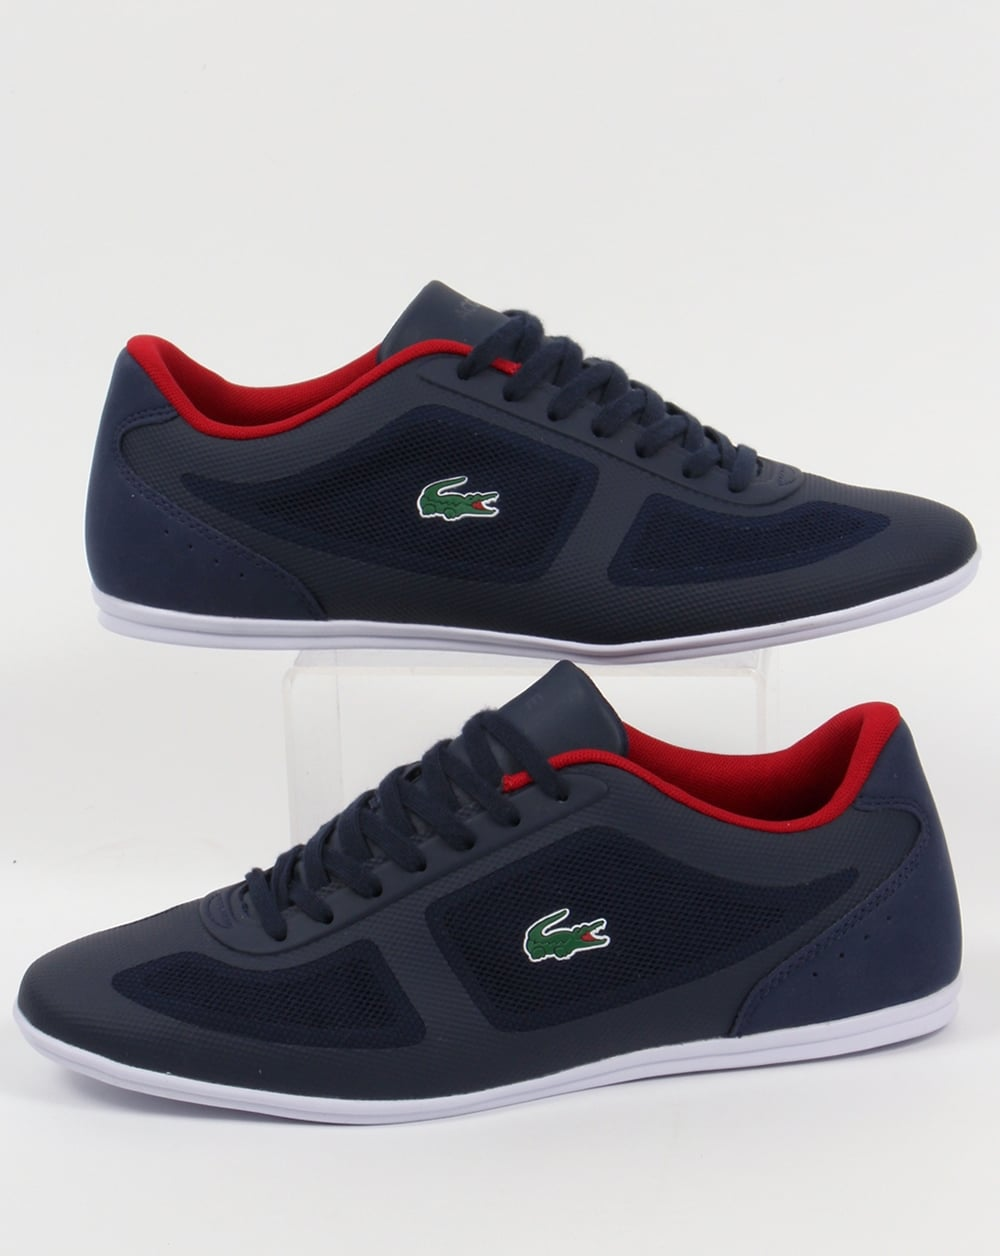 1afdef62a Lacoste Lacoste Misano Evo Trainers Navy Red